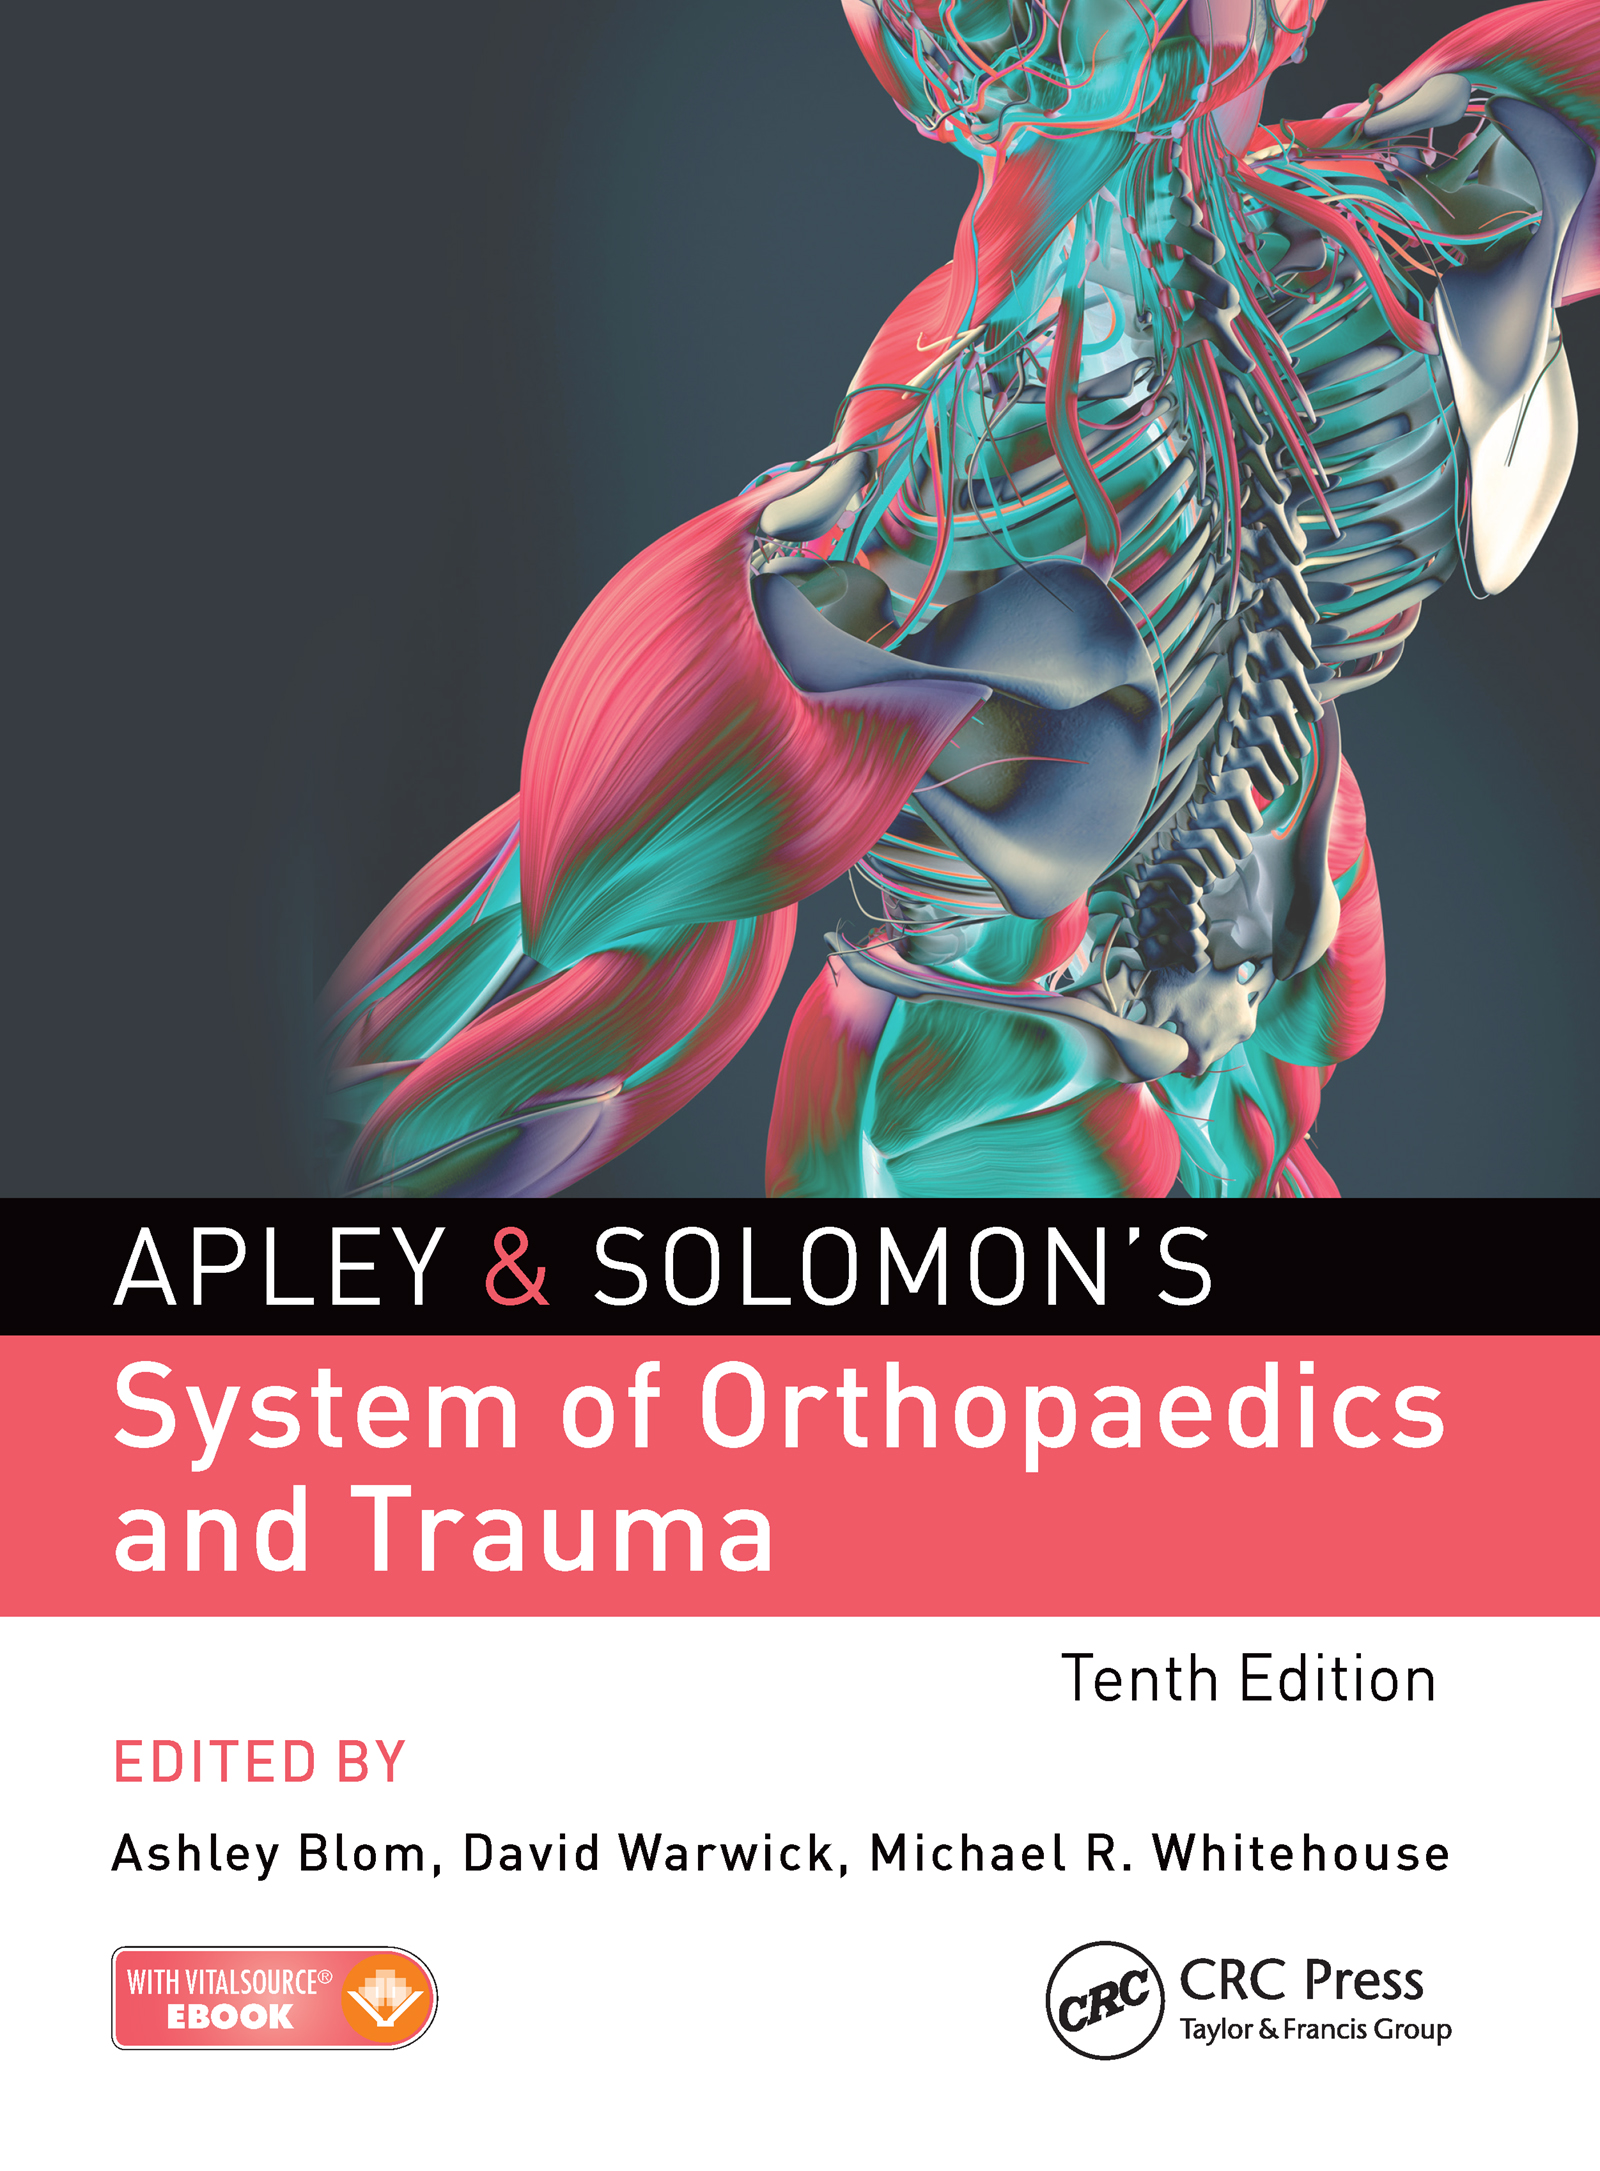 Apley and Solomon's System of Orthopaedics and Trauma